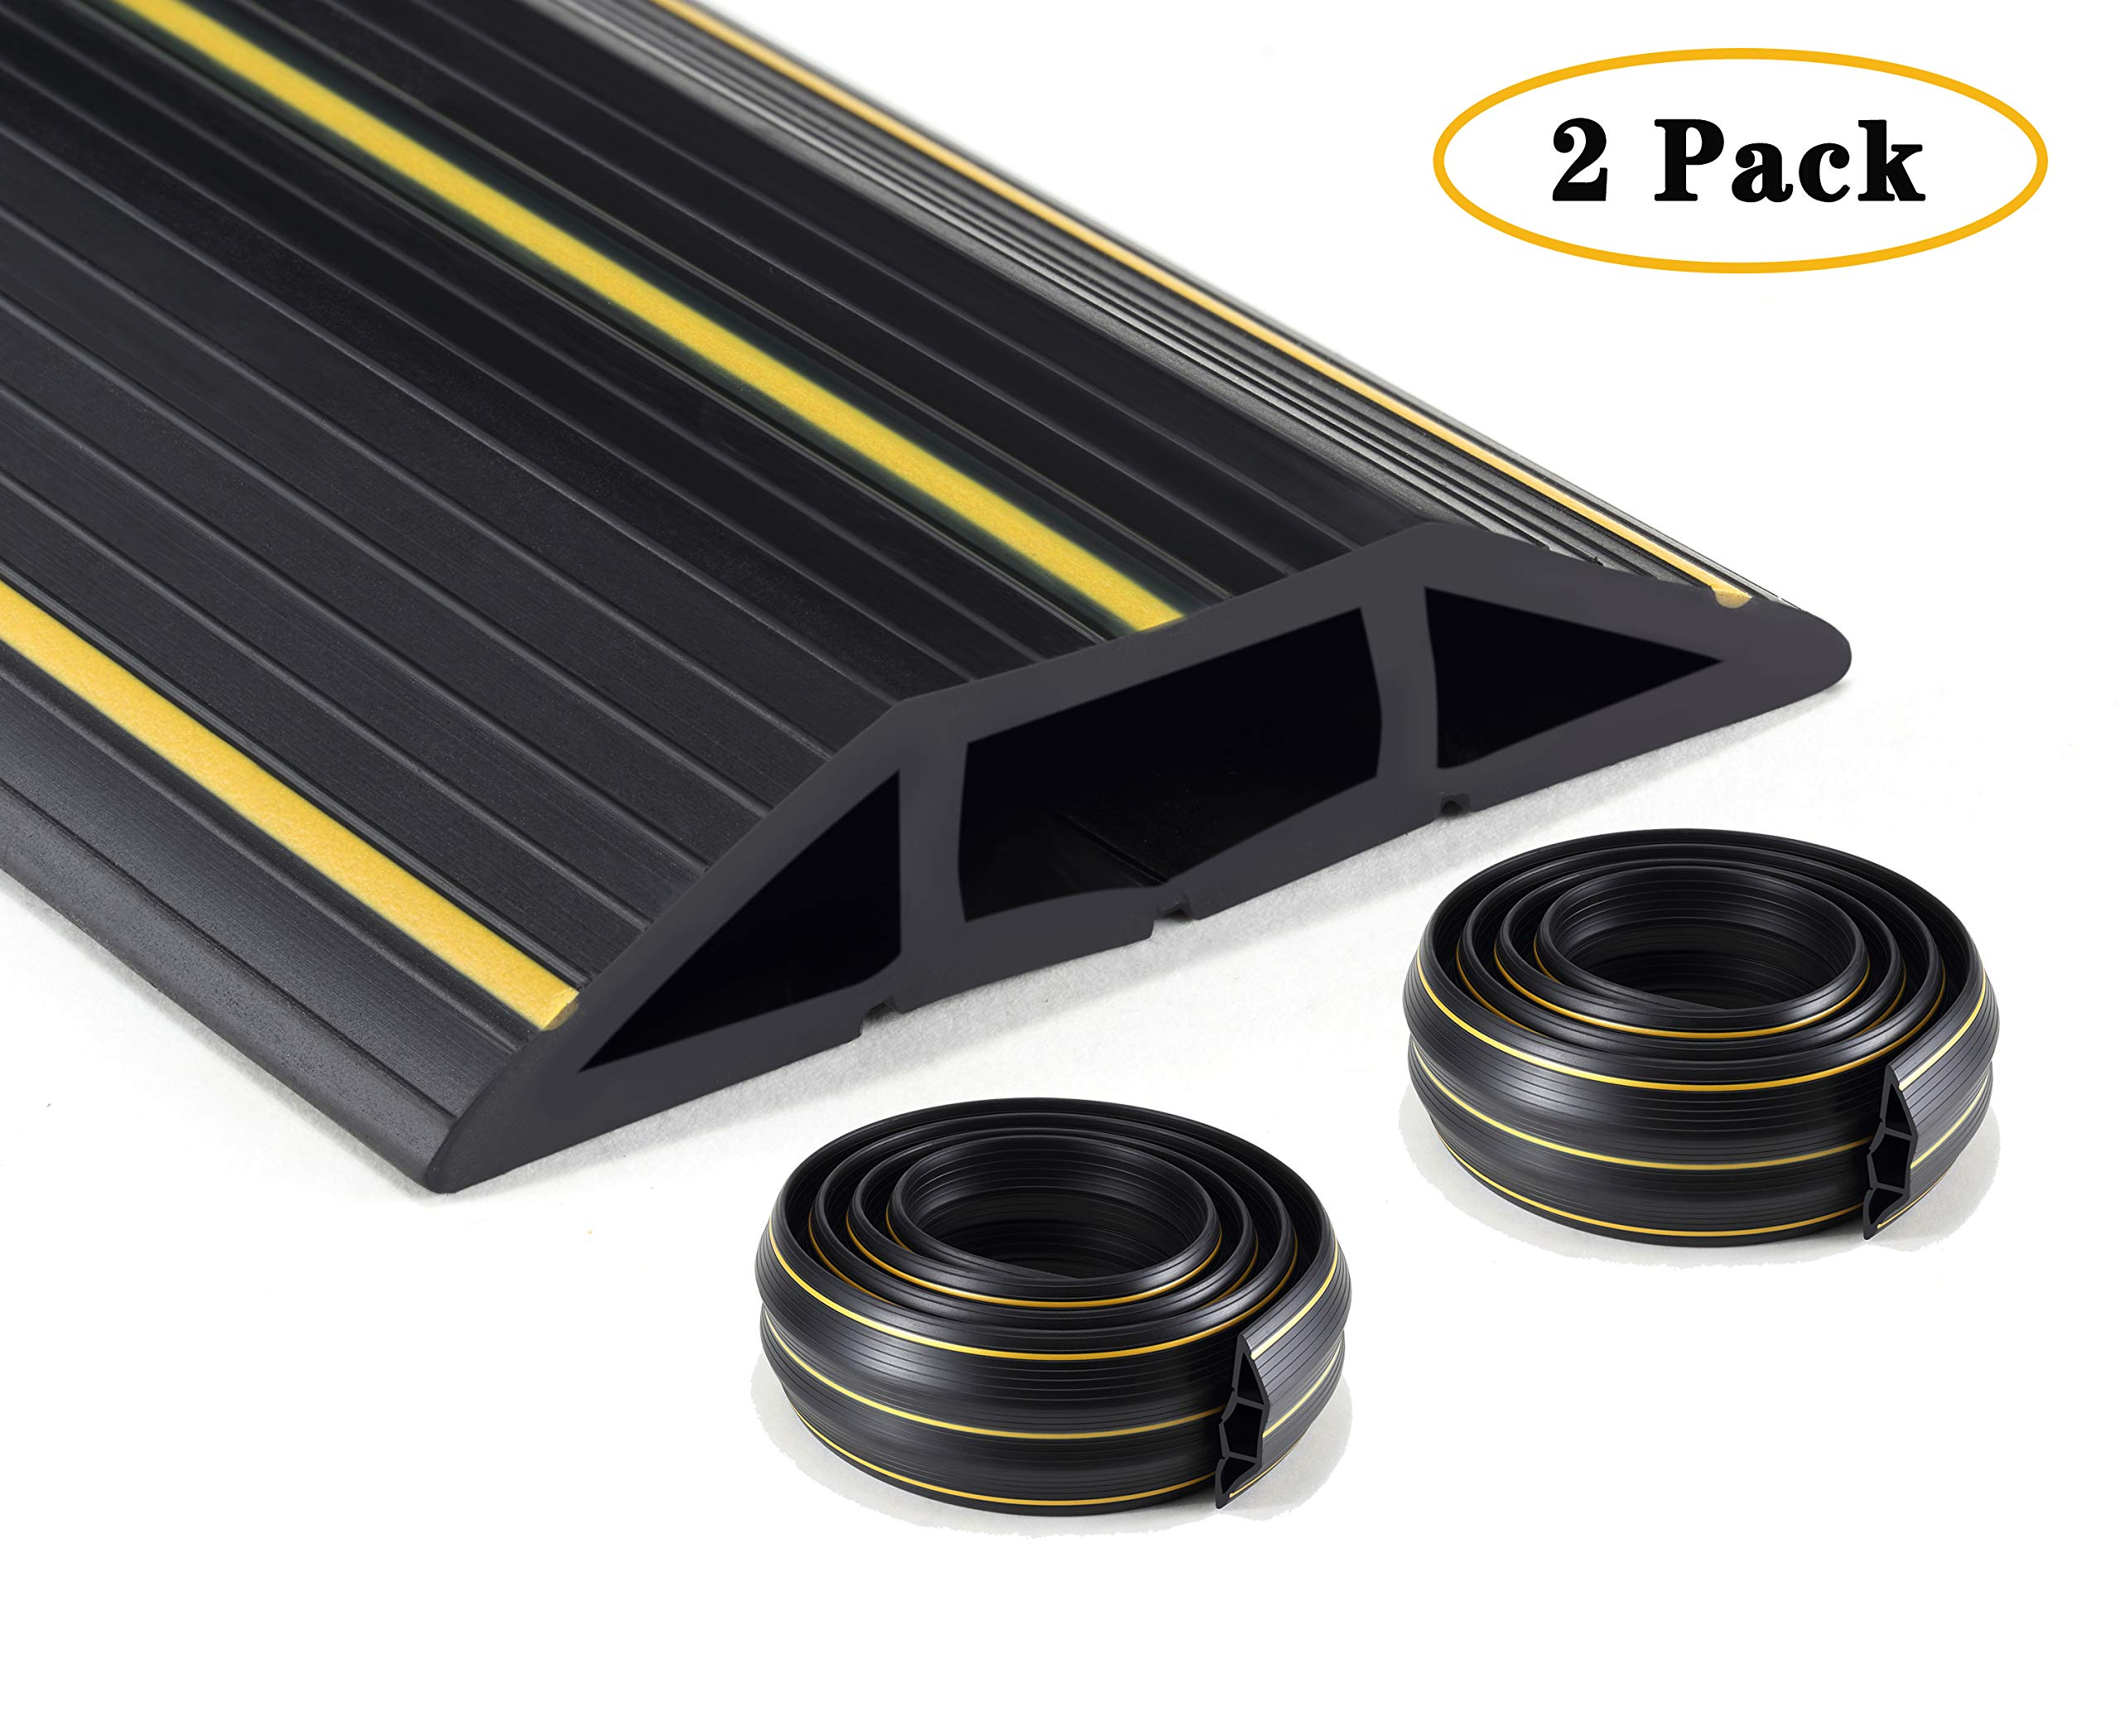 2 Pack overfloorCord/Cable Protector - 3 Cord Channels, Fastening Wire Organizer - Easy to Install (Total 20 ft, Black)